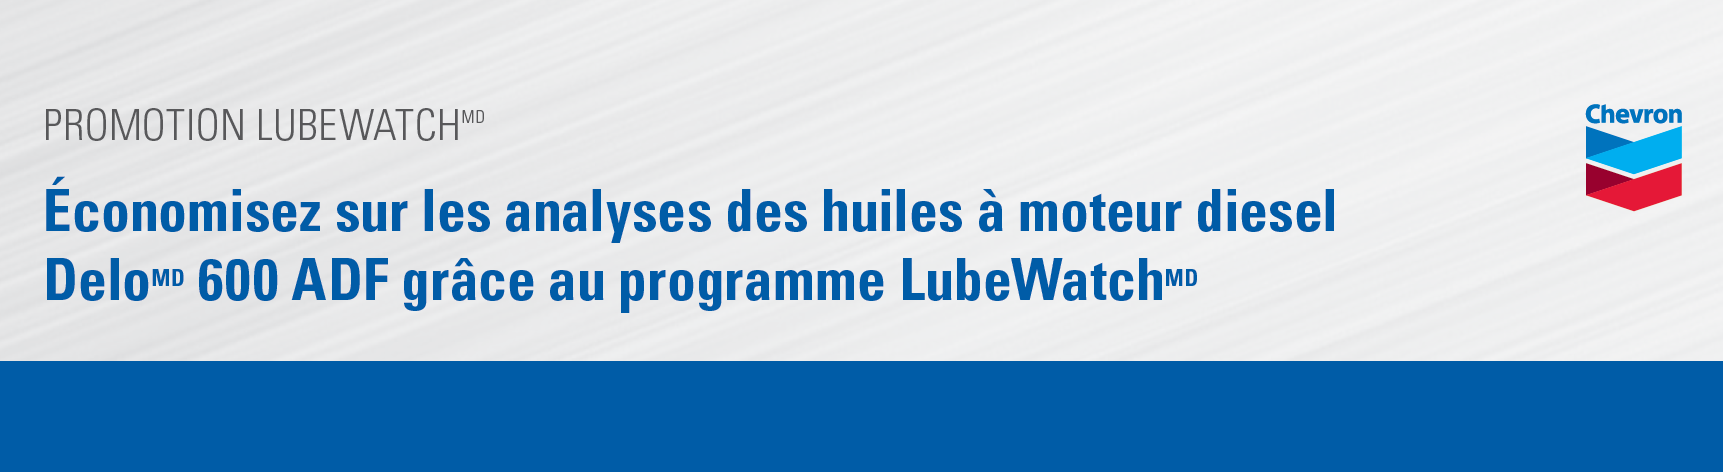 Promotion LubeWatch